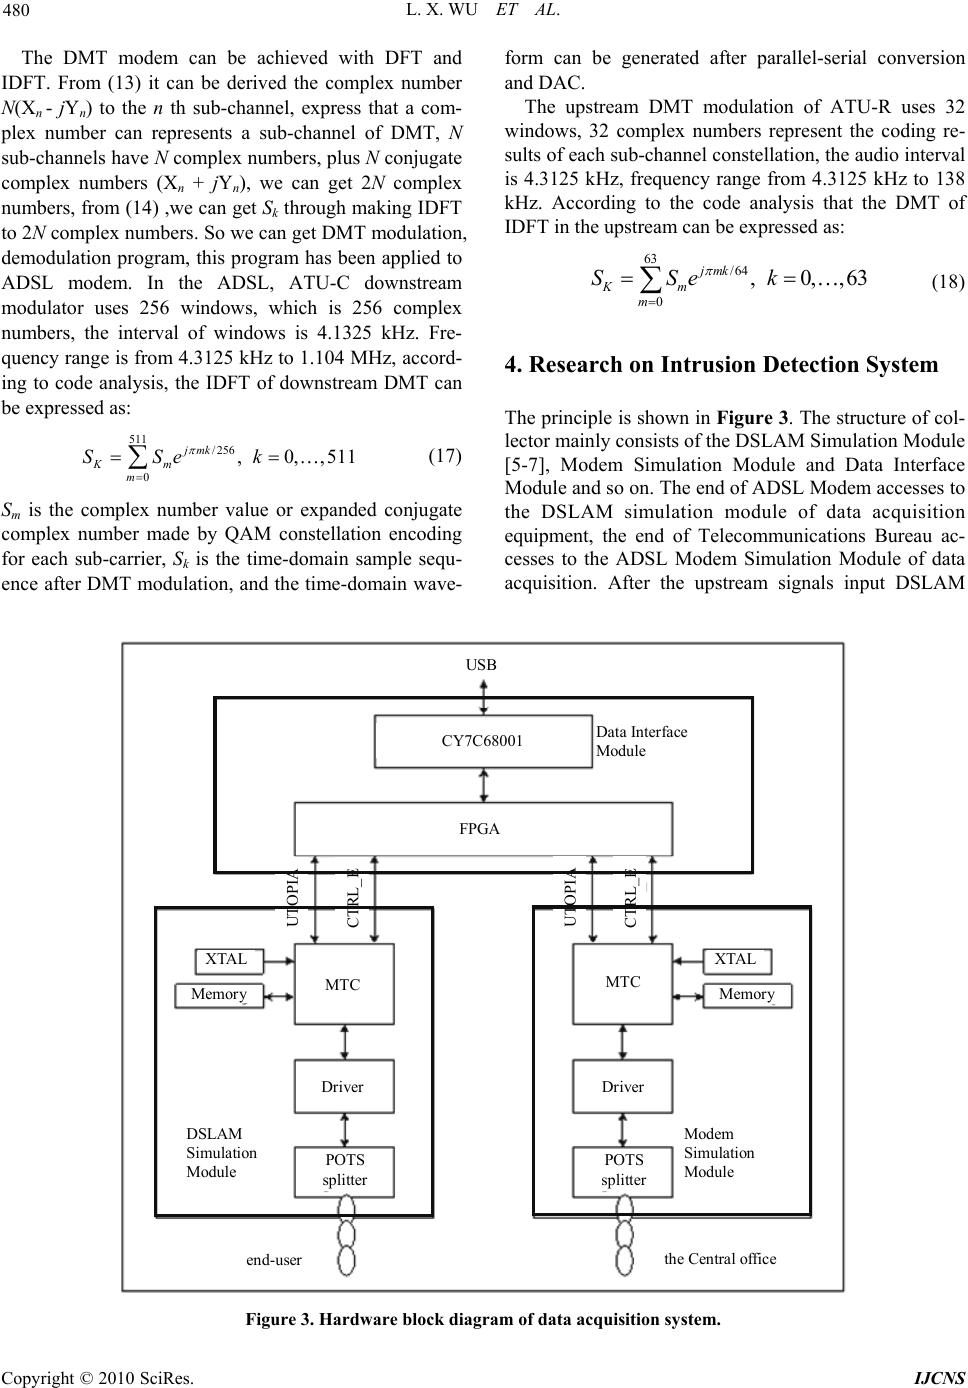 intrusion detection system thesis pdf